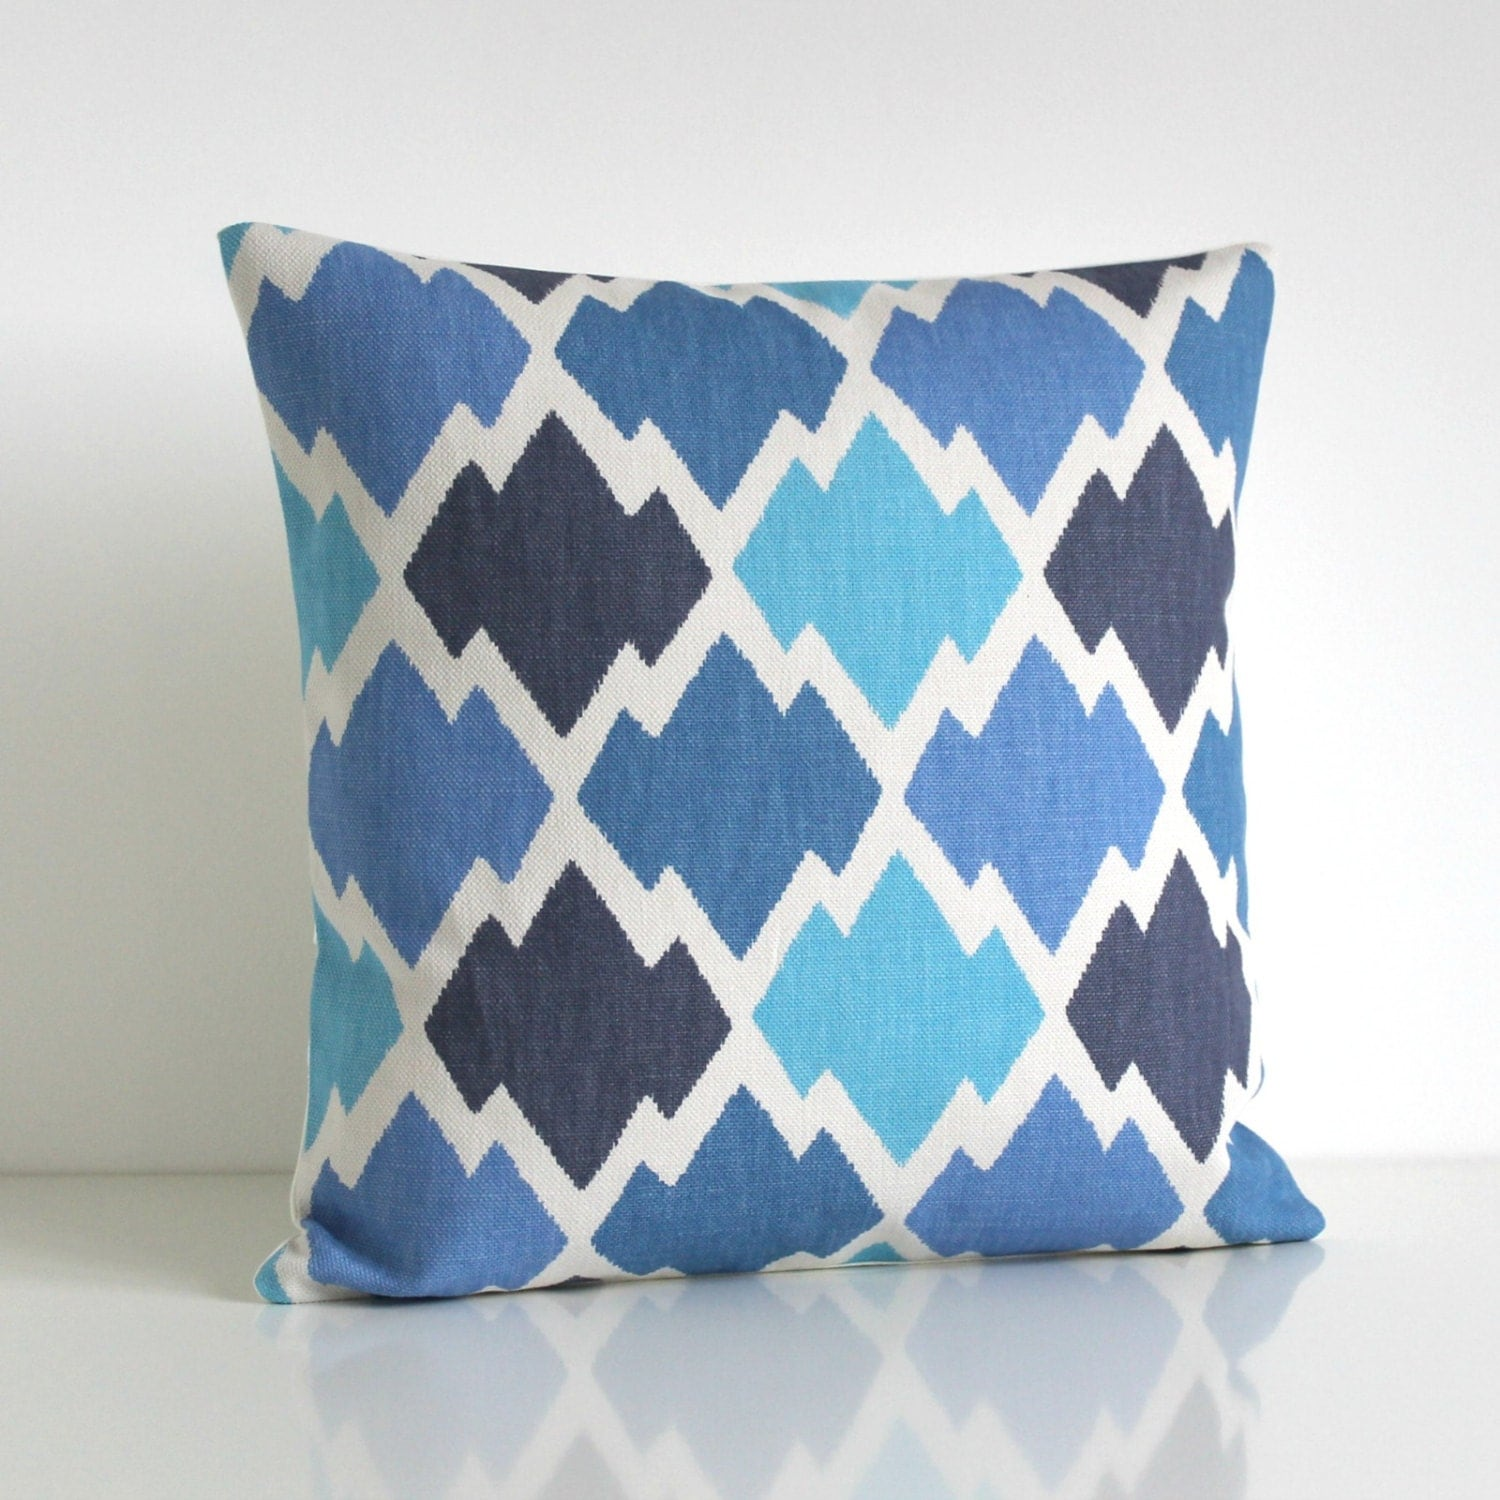 Ikat Throw Pillow Covers : Ikat Pillow Cover 16x16 Throw Pillow 16 Inch Ikat by CoupleHome